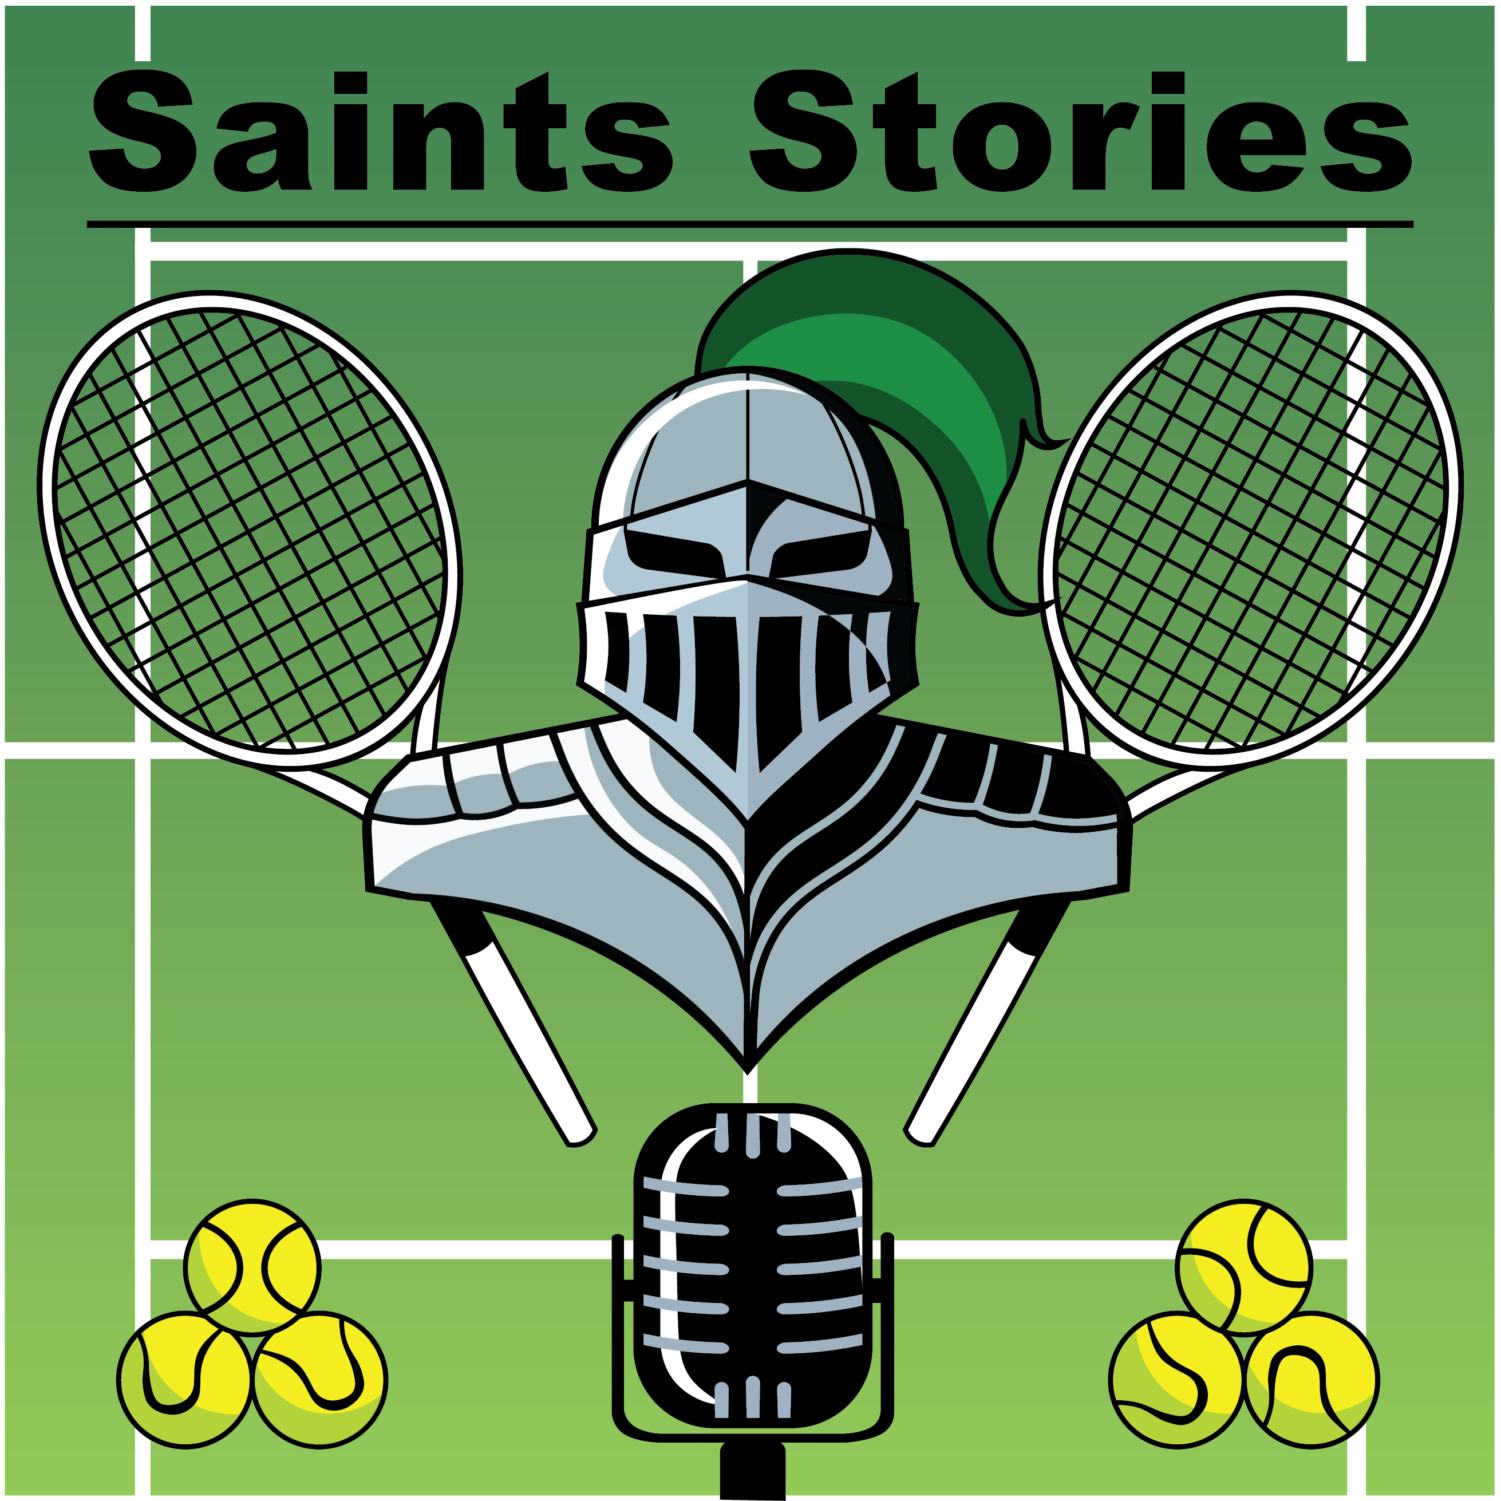 Saints Stories talks to Gabe Ortiz about his recent NJCAA national tennis title and the next tournament. He will face off against D-1 schools as the lone NJCAA player left in the nation.